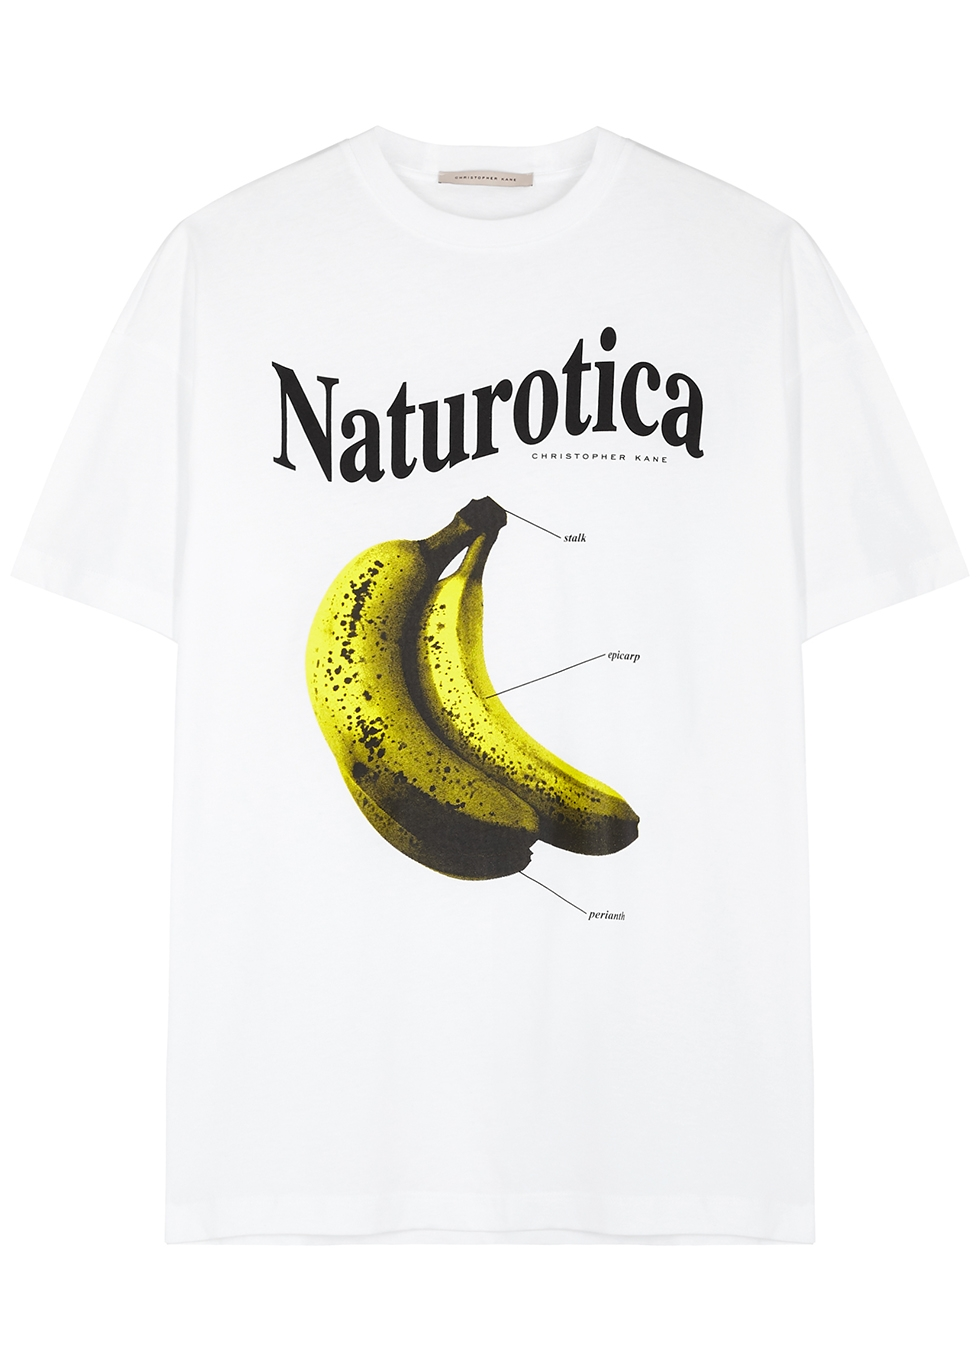 Naturotica printed cotton T-shirt